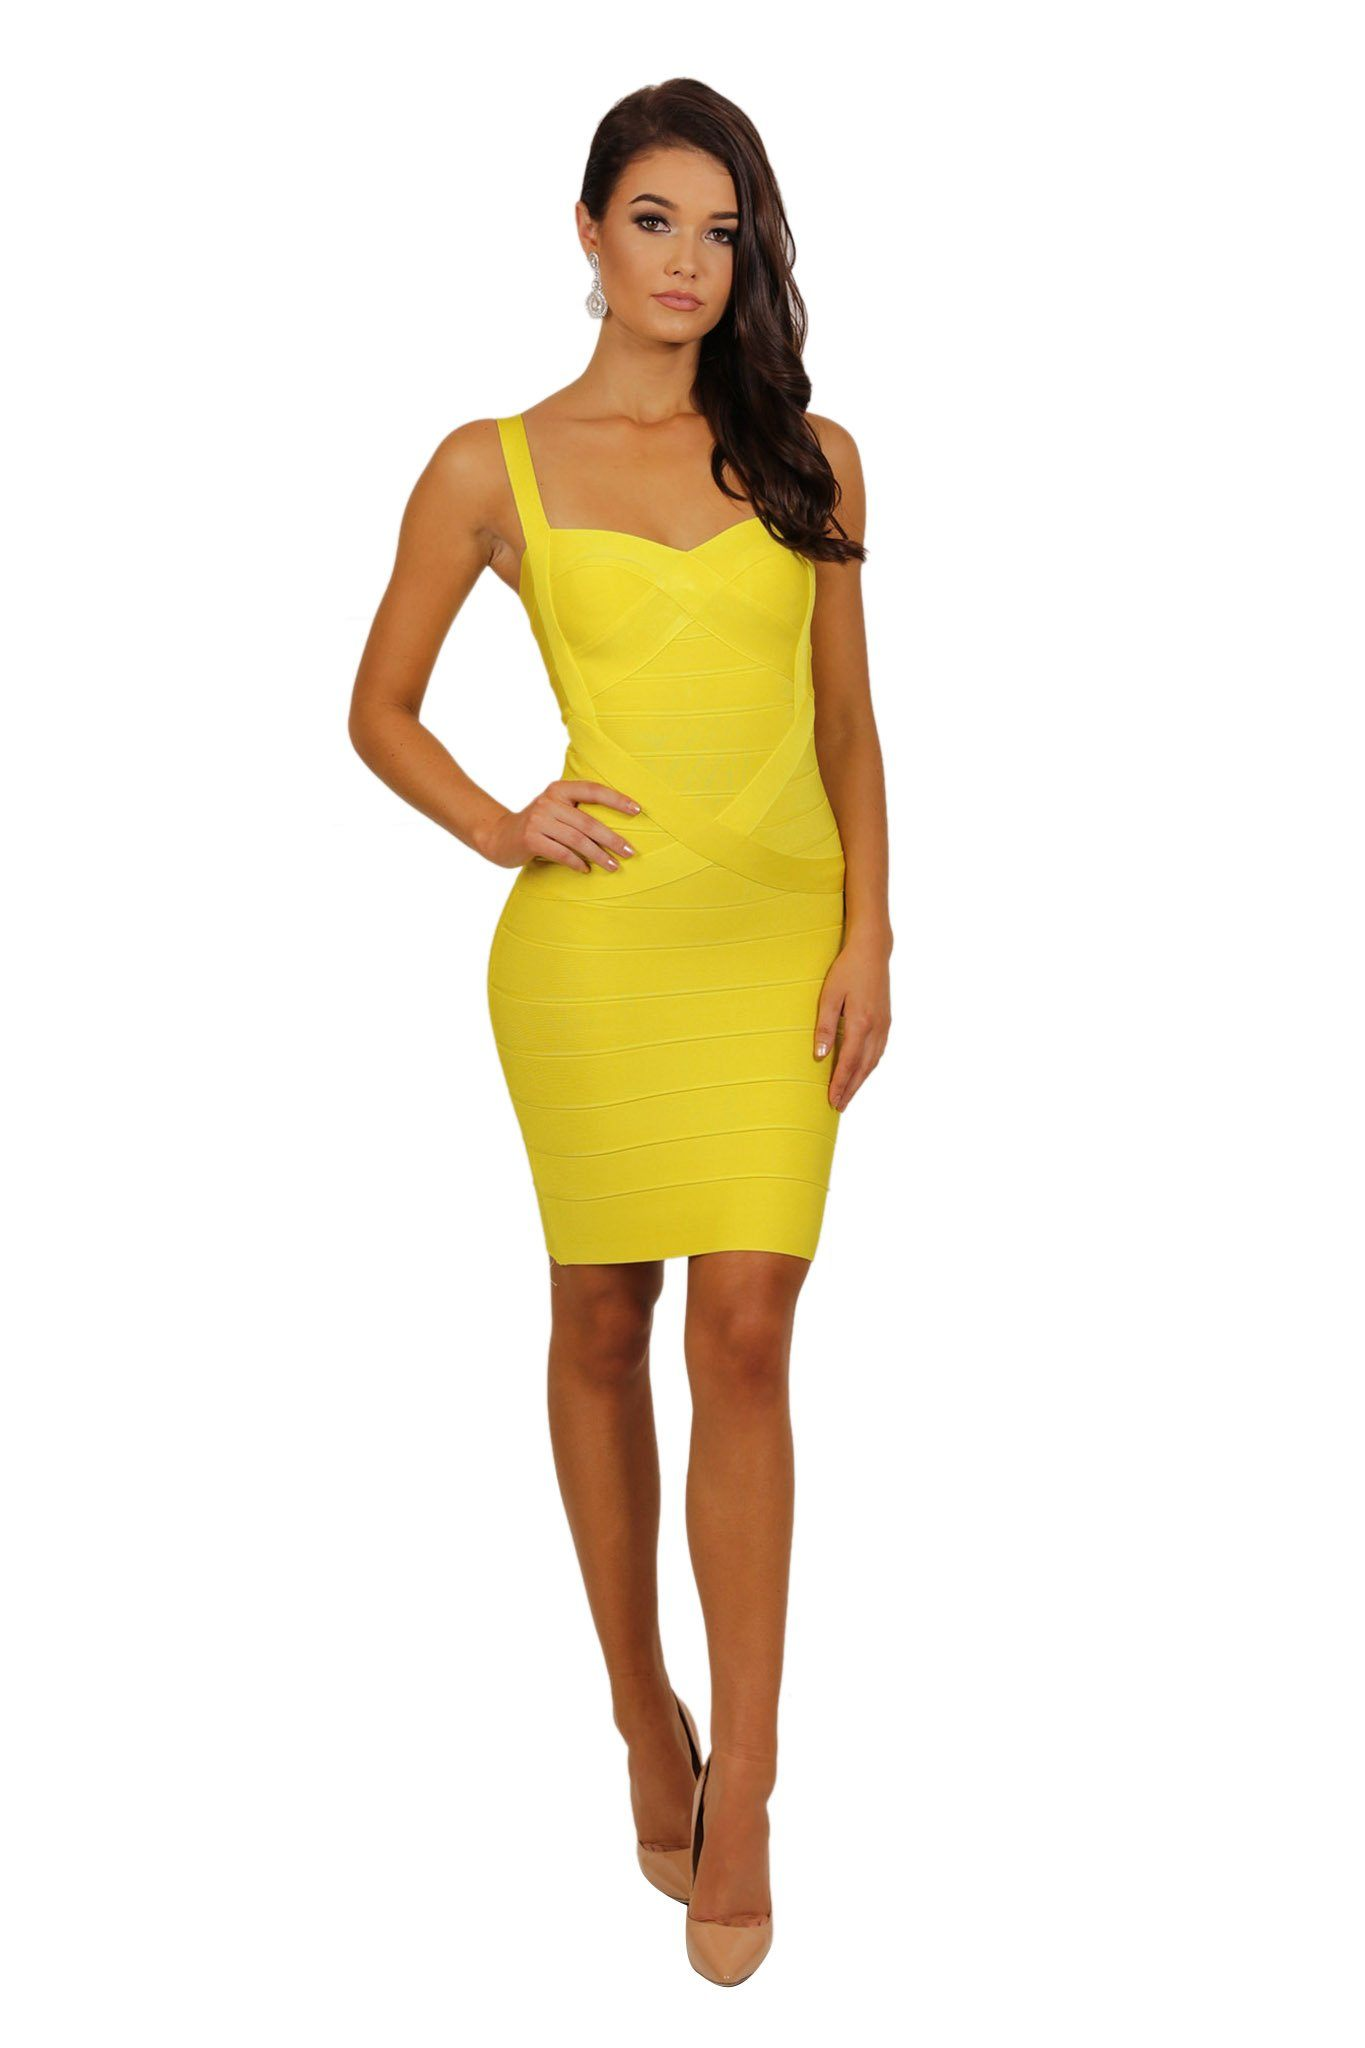 Mini bandage dress subtle sweetheart neckline shoulder straps in yellow color